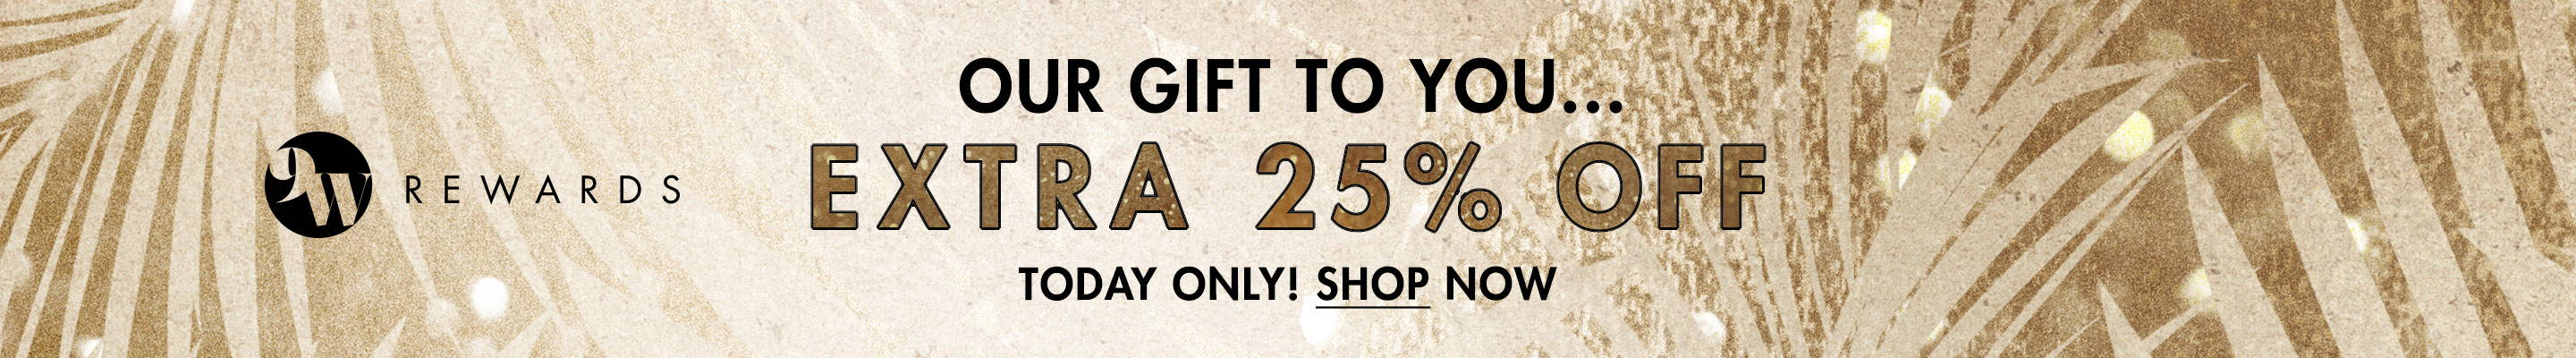 Extra 25% Off